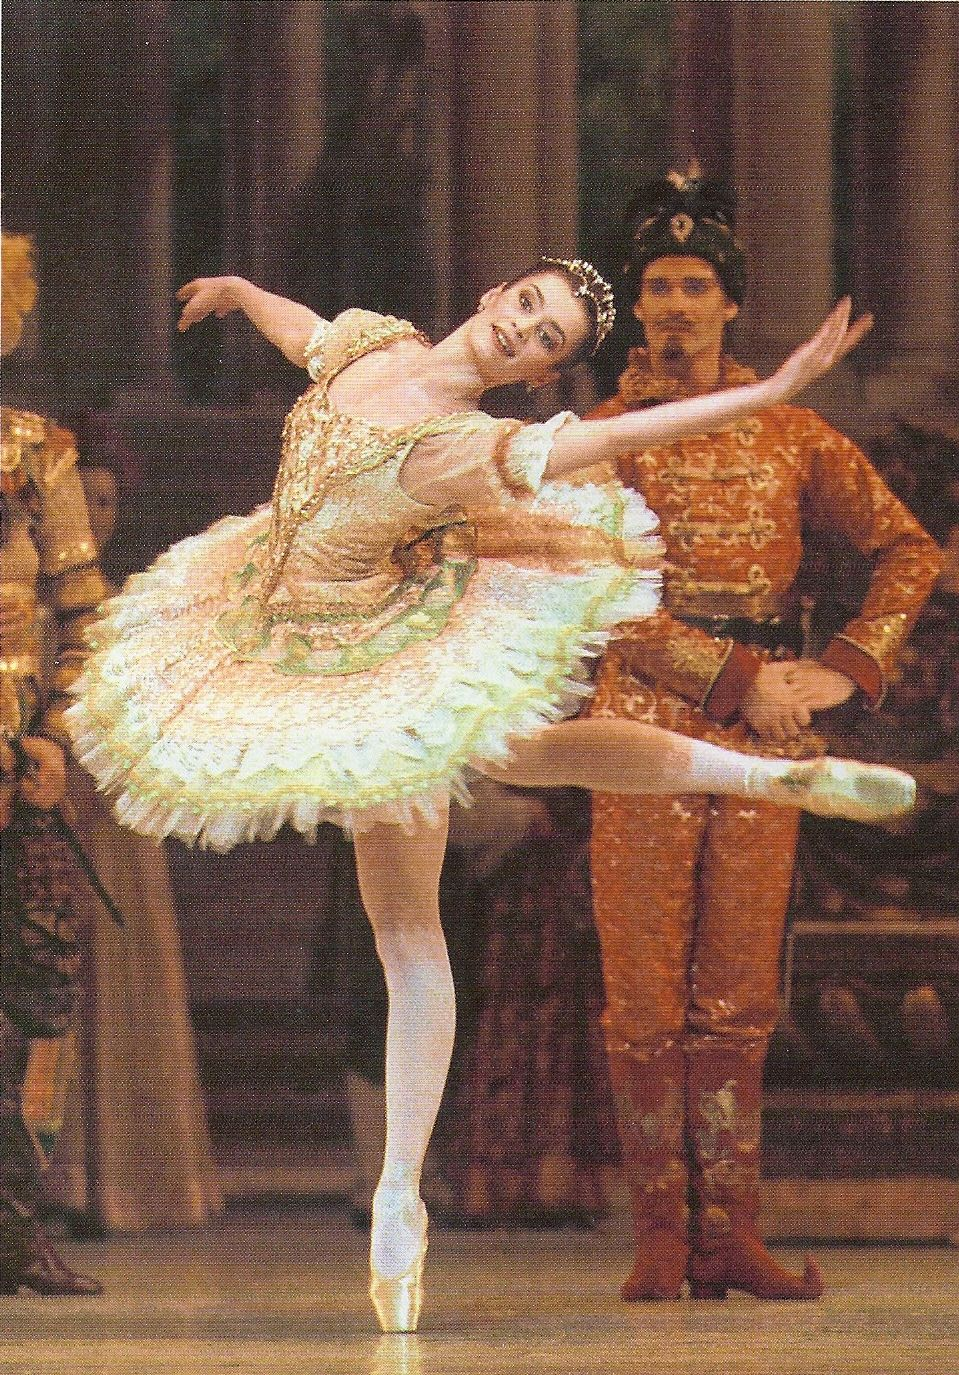 Renverse To Upset Or Overturn Ensure That Your Body Is Driving The Renverse To Make Your Leg Move Paris Opera Ballet Sleeping Beauty Ballet Ballet Dancers